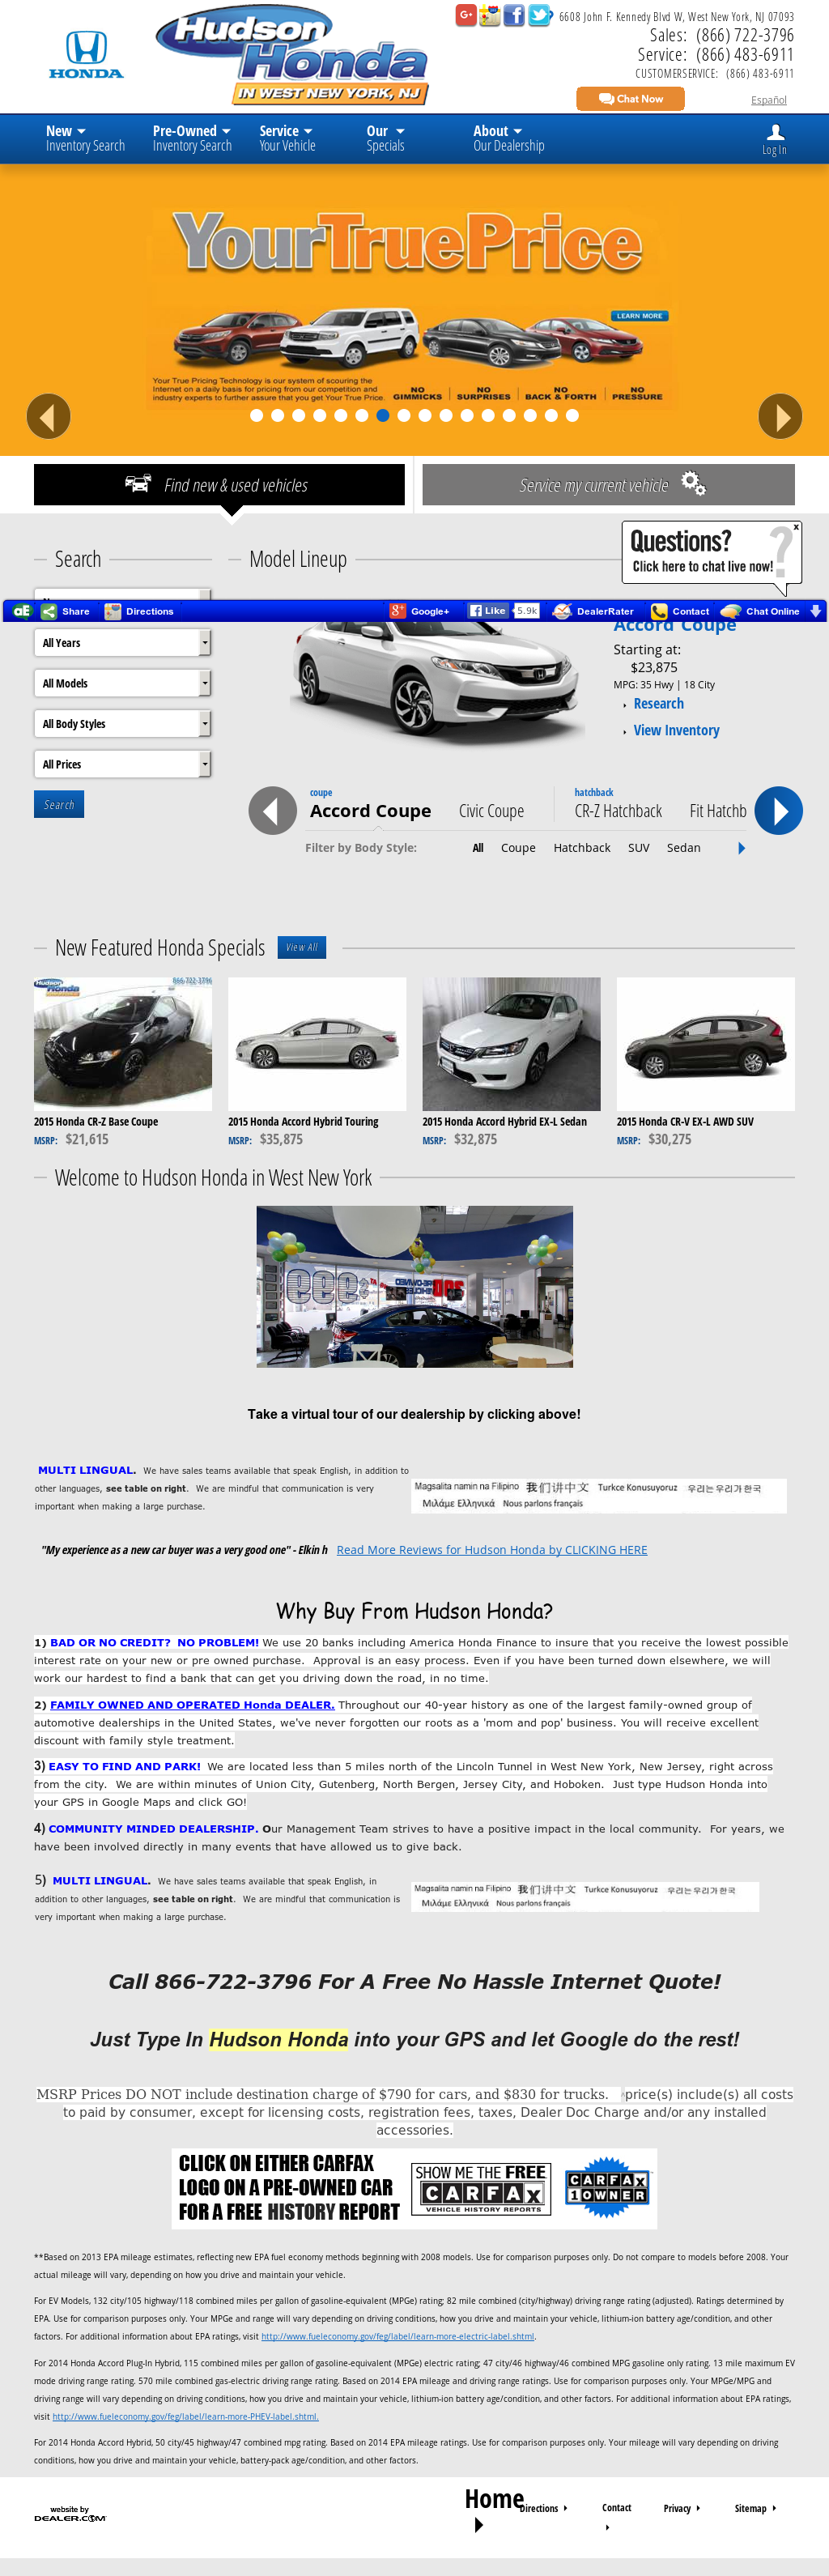 Hudson Honda Competitors, Revenue And Employees   Owler Company Profile